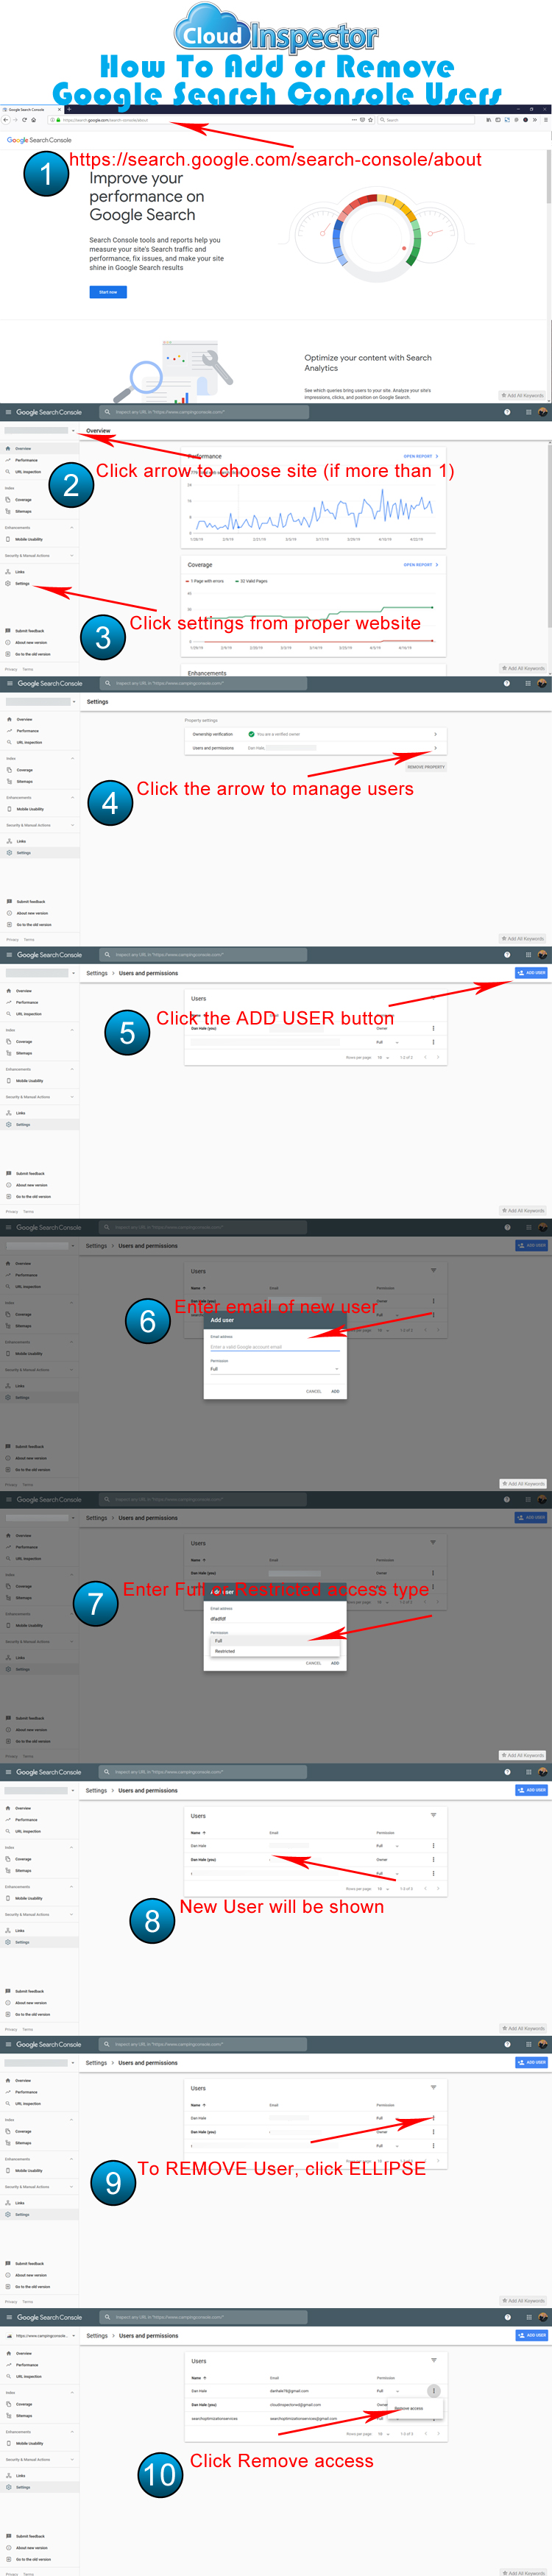 how to add users to Google Search Console